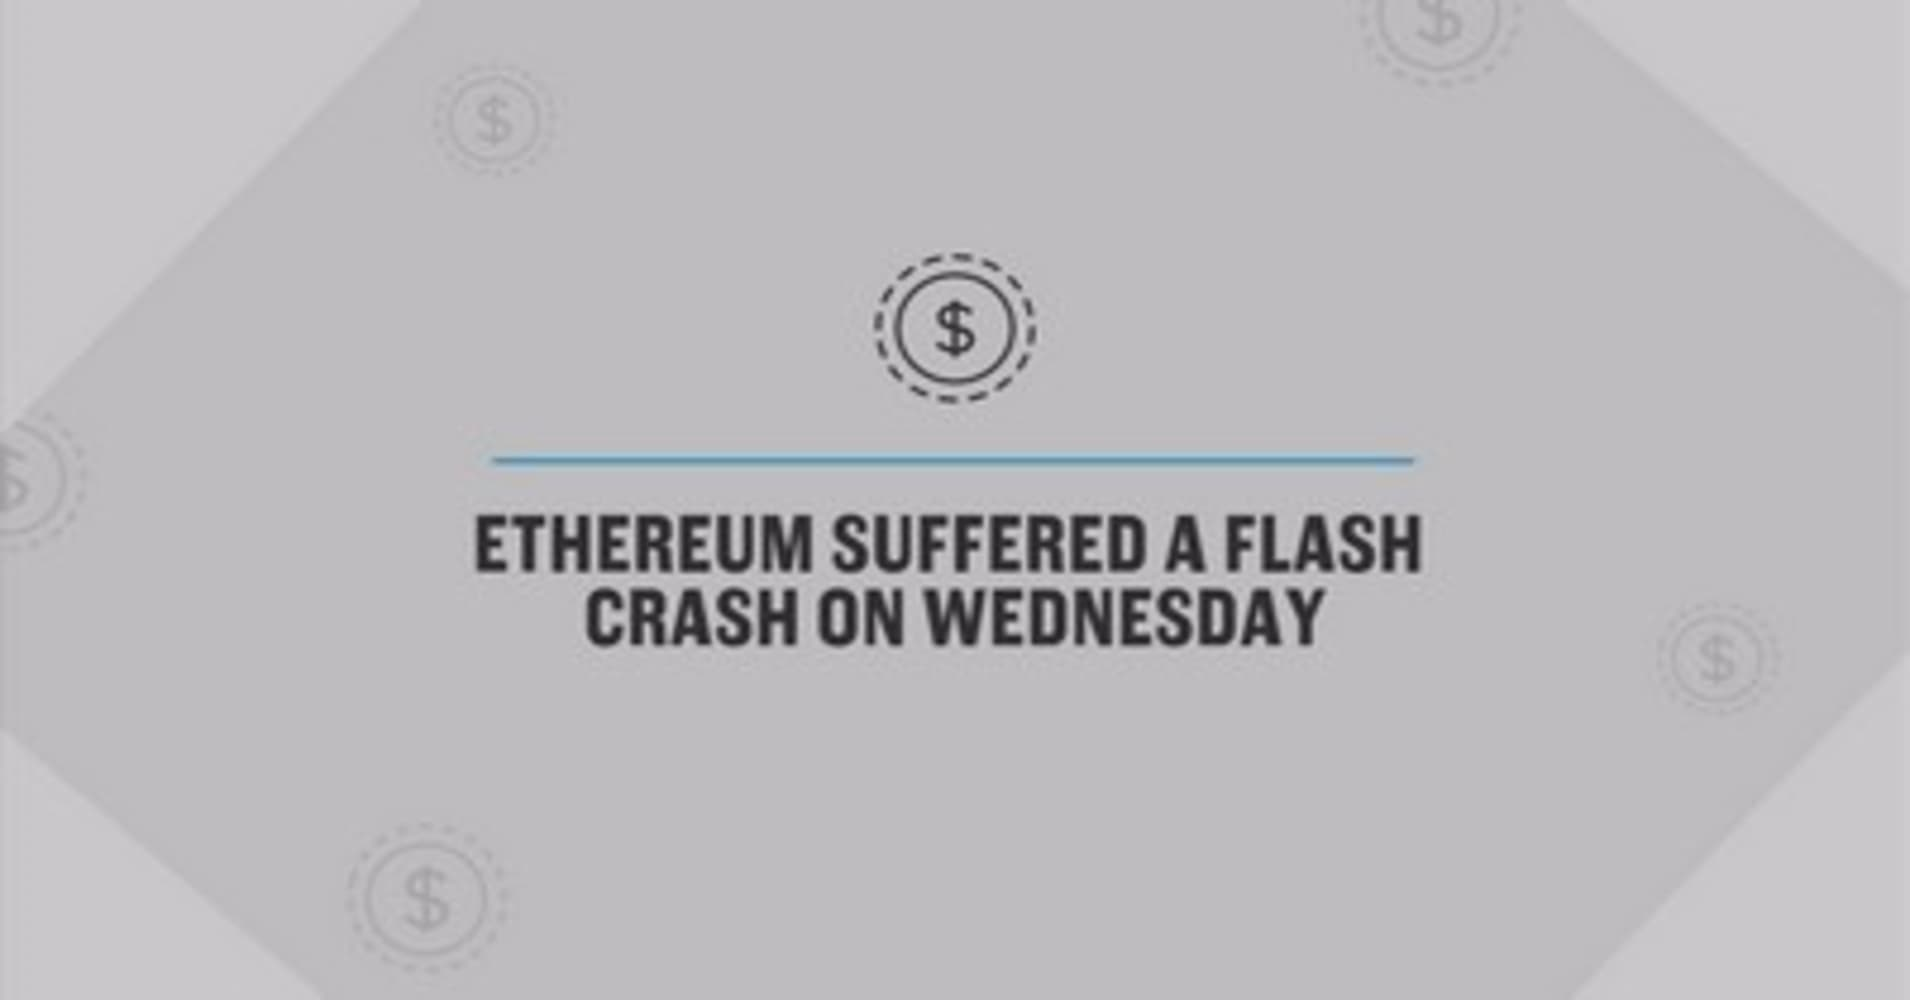 Ethereum Crashed From $319 To 10 Cents In Seconds On One Exchange After  'multimillion Dollar